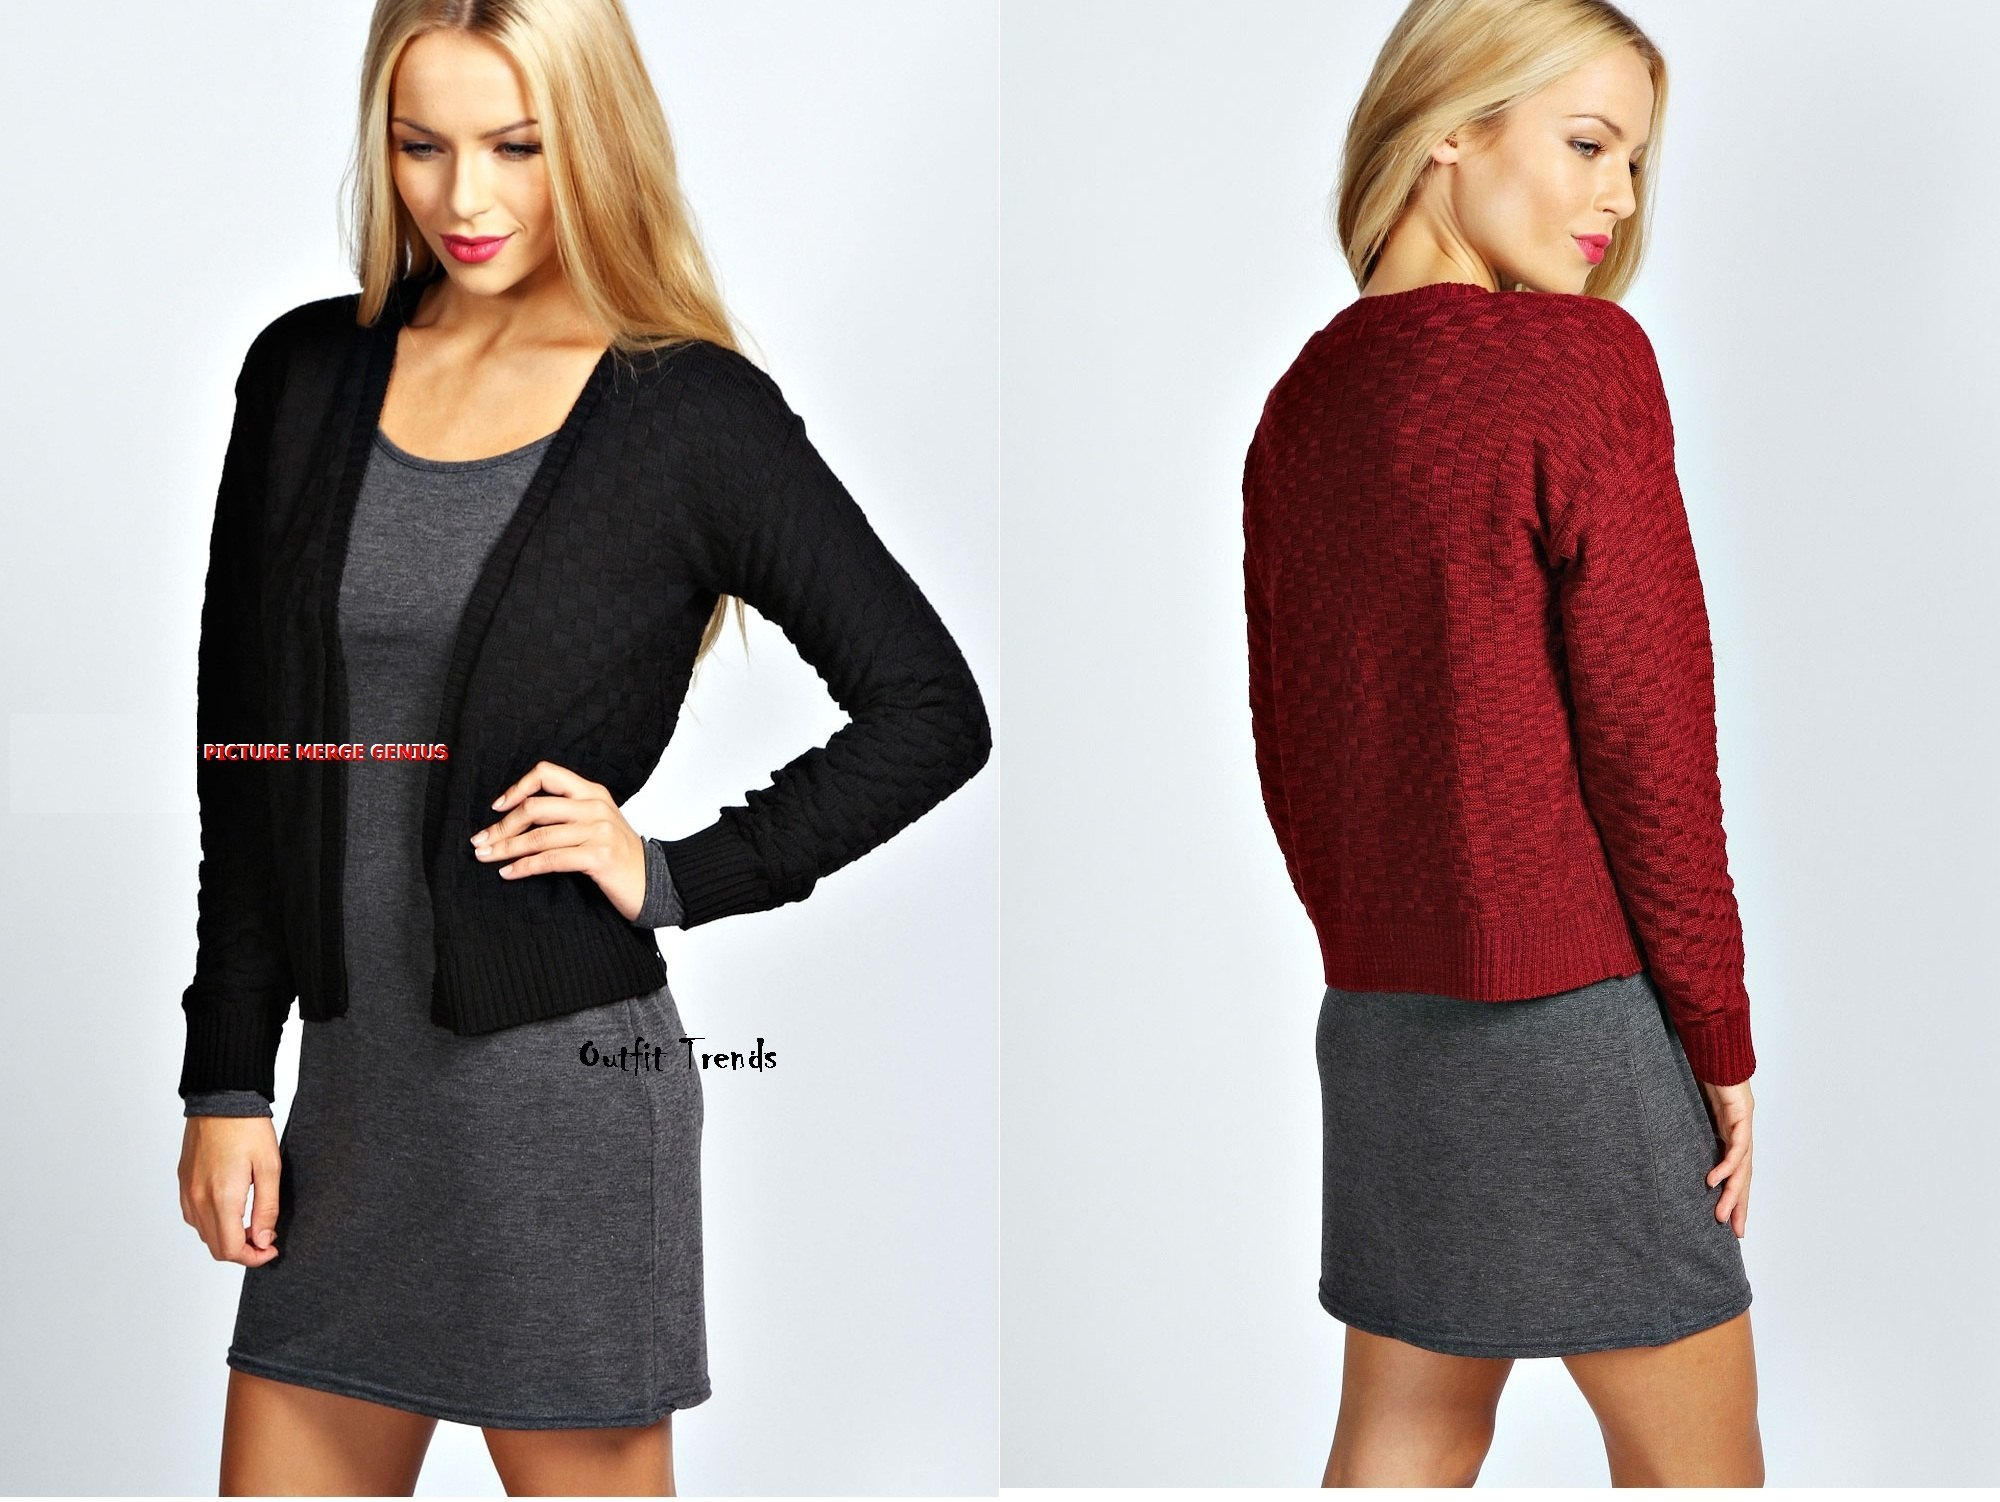 Stylish Black and Red Cardigans